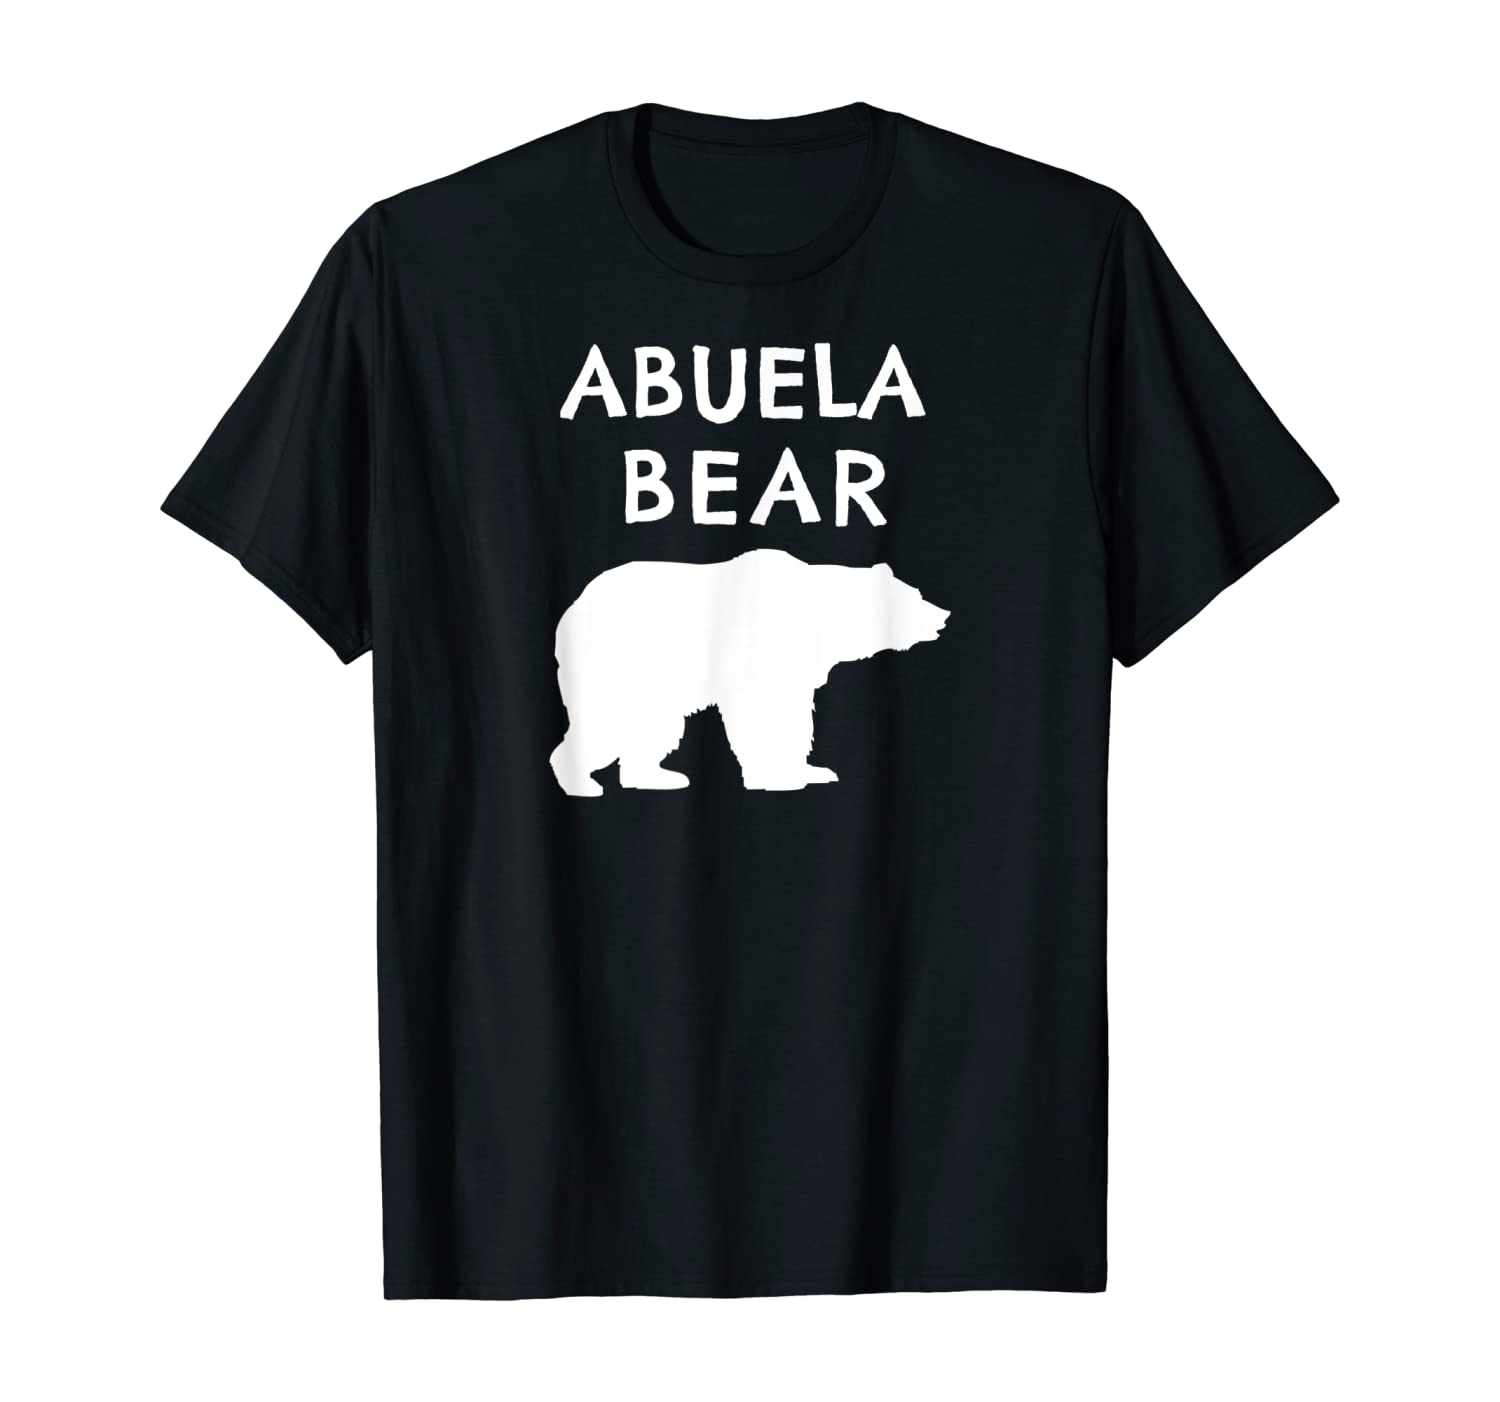 Abuela Bear Shirt Bear Gifts For Grandma Grandparents Shirts T-Shirt